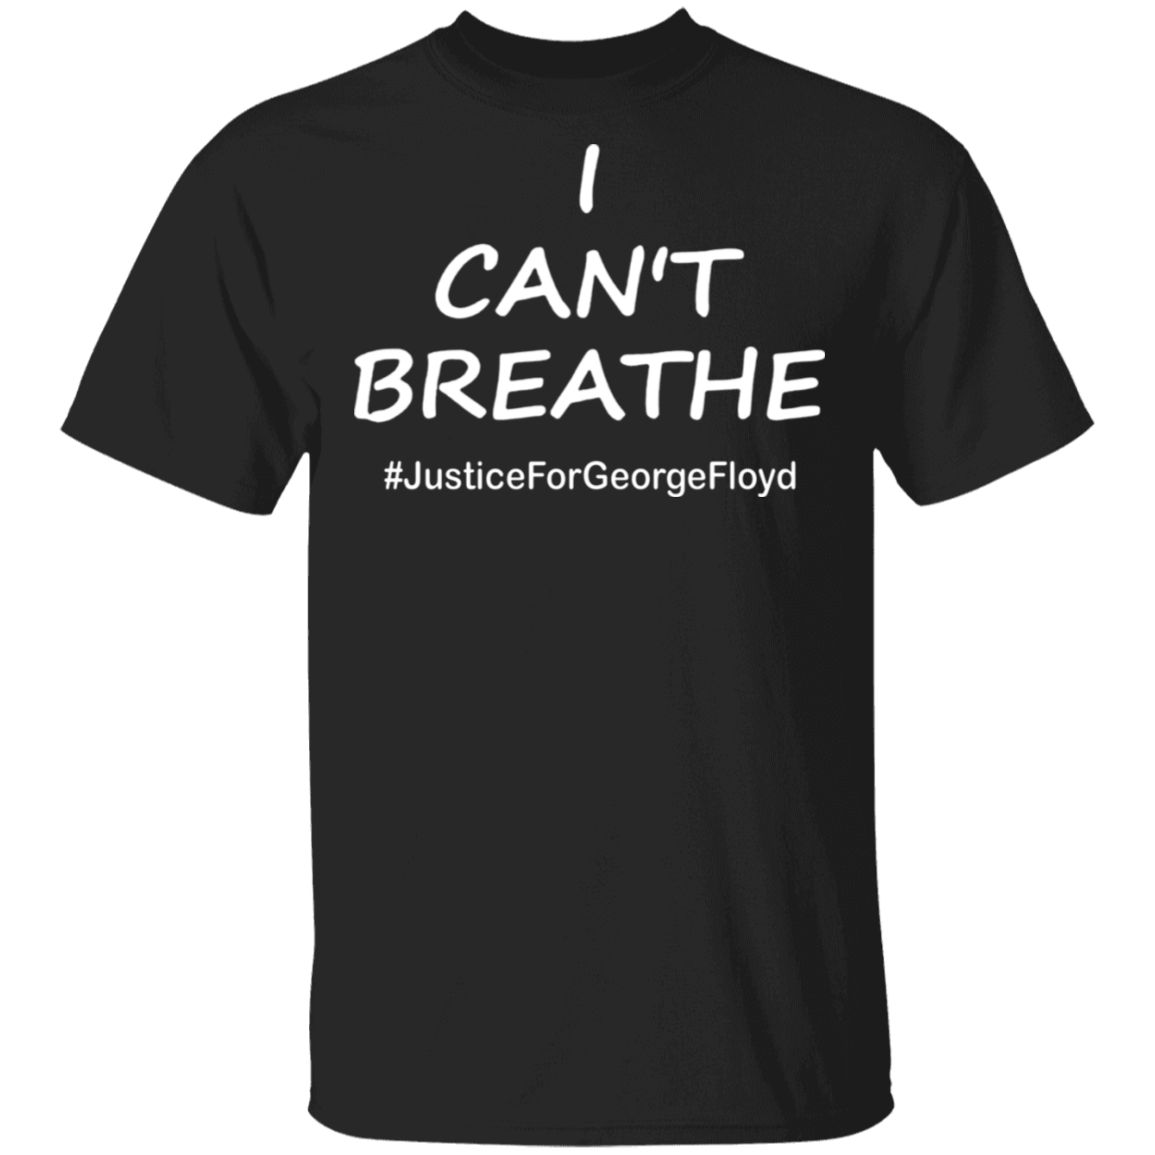 George Floyd I Can't Breathe T-Shirt Justice For George Floyd